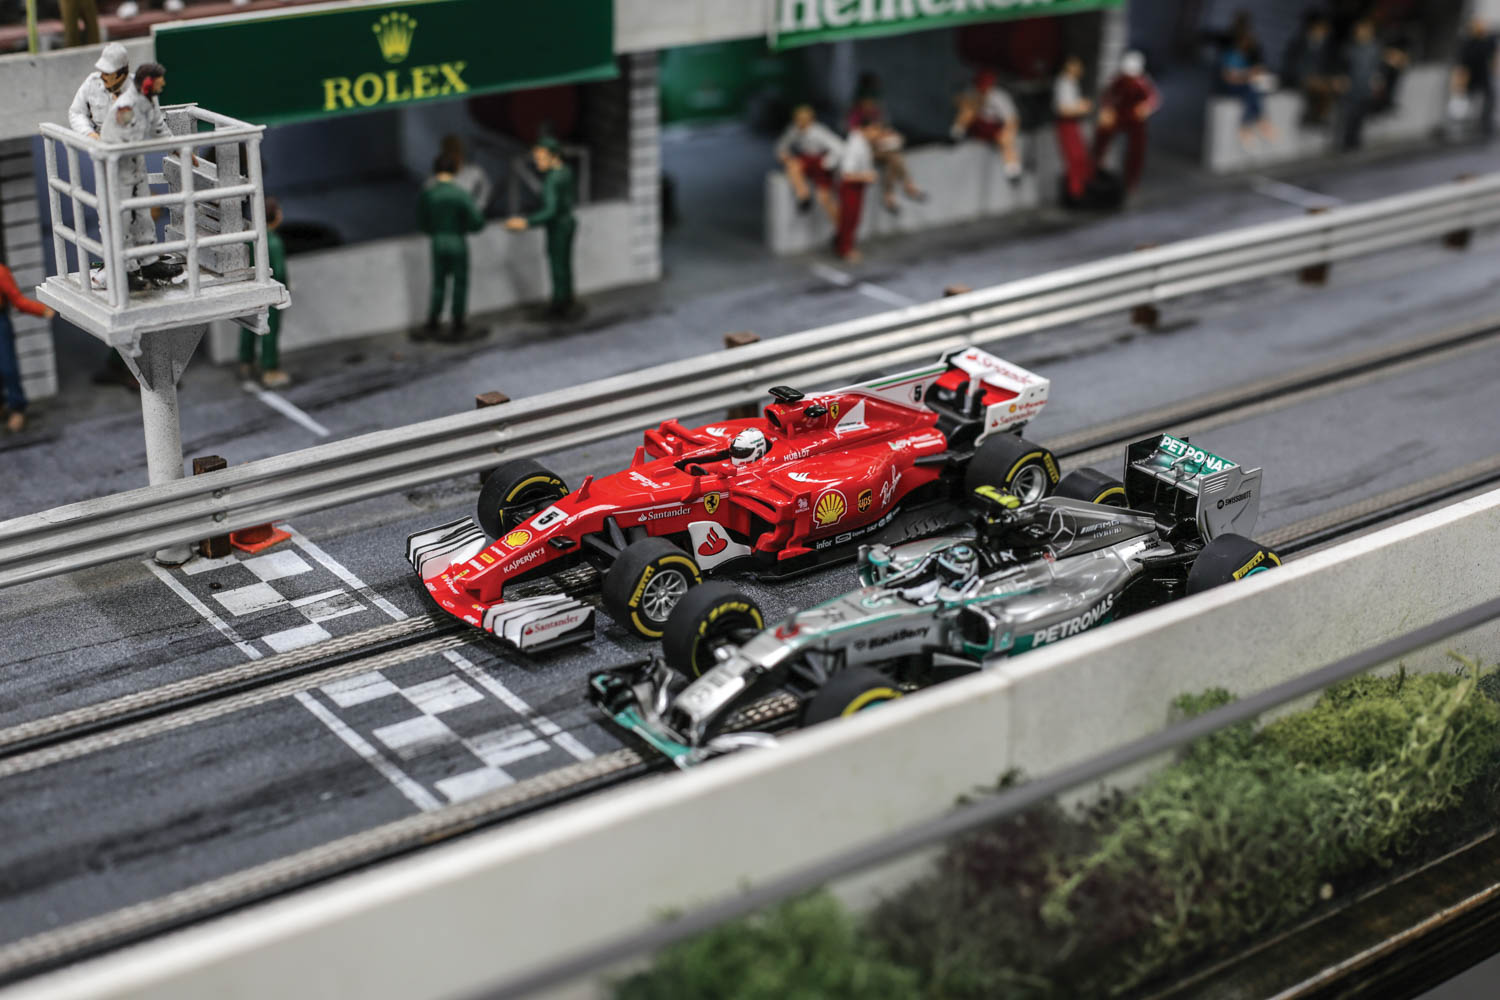 This incredible 1:32-scale F1 slot car track could sell for $20K-$30K thumbnail